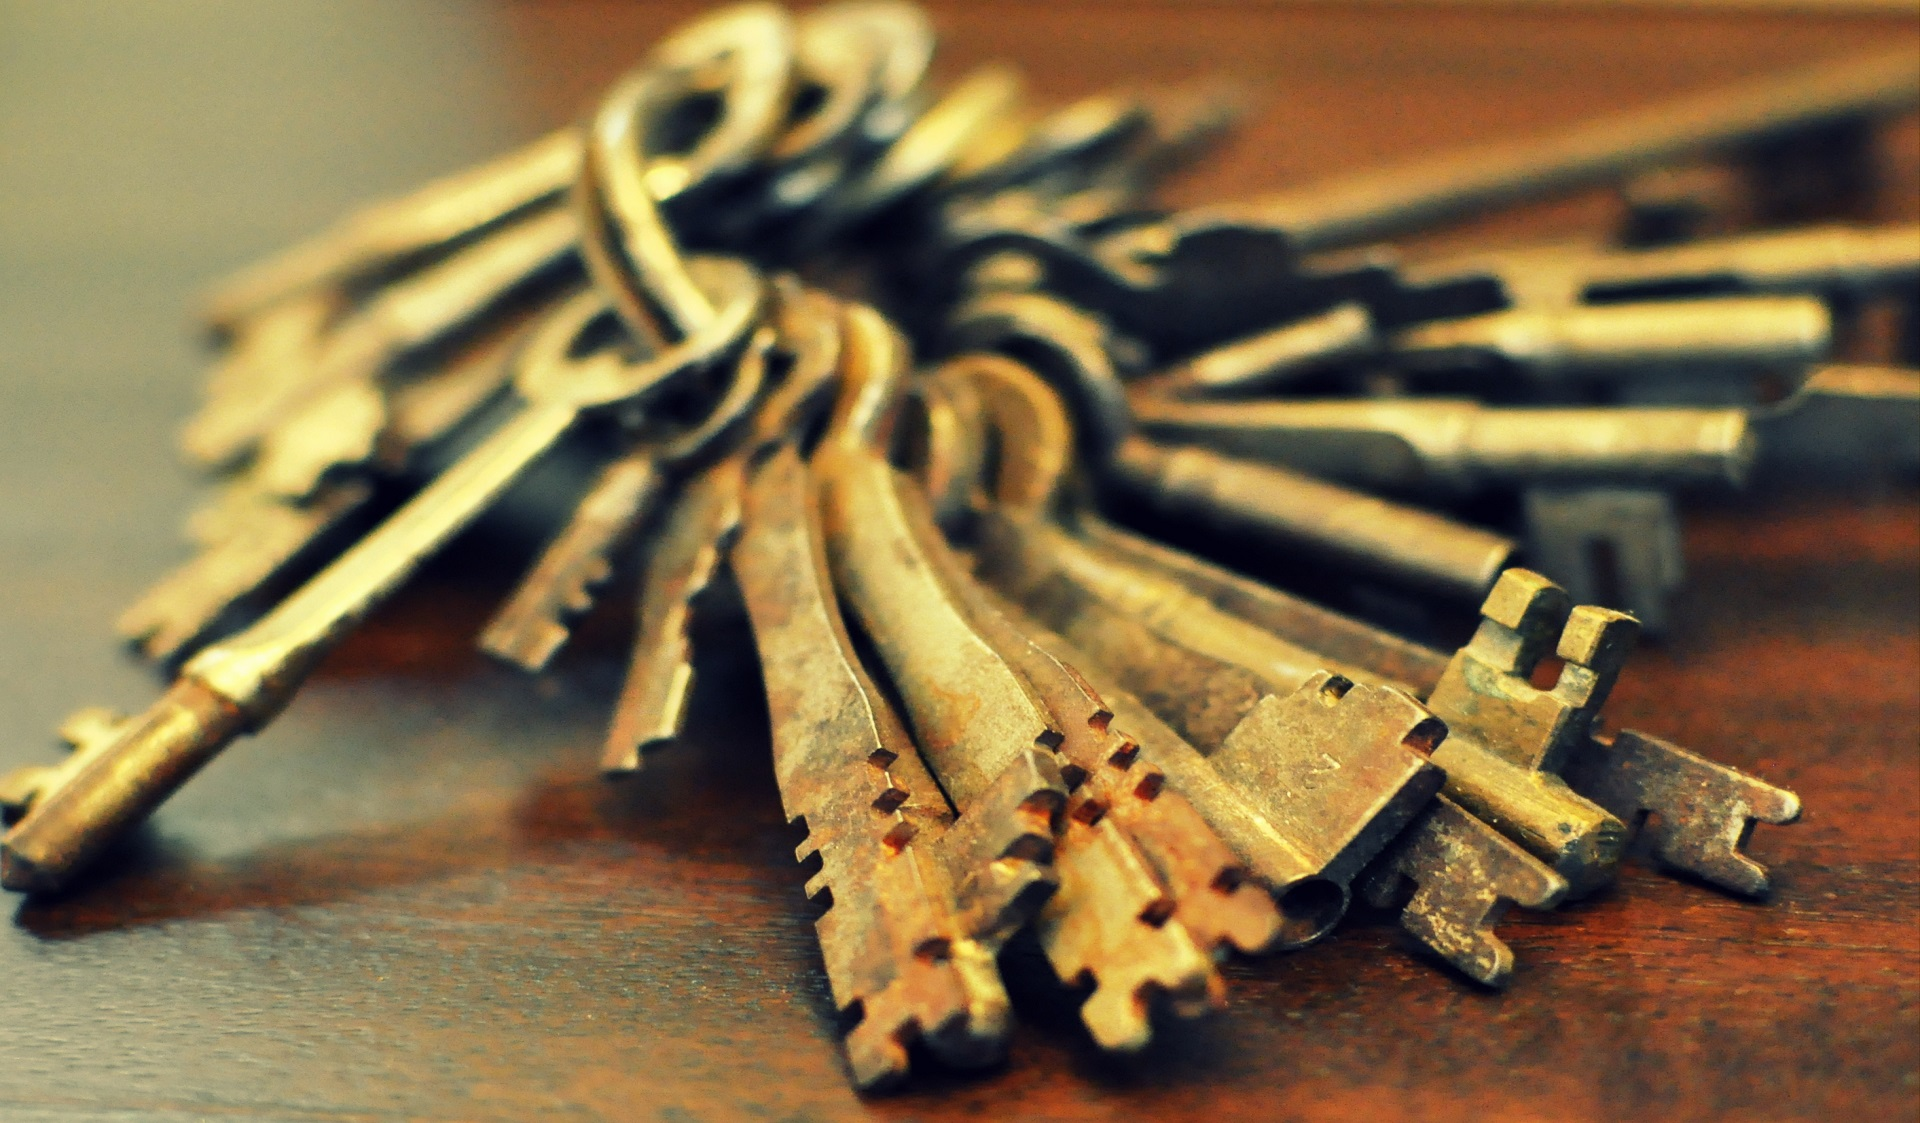 Keys, Credits: Jausle Enkaur, Flickr